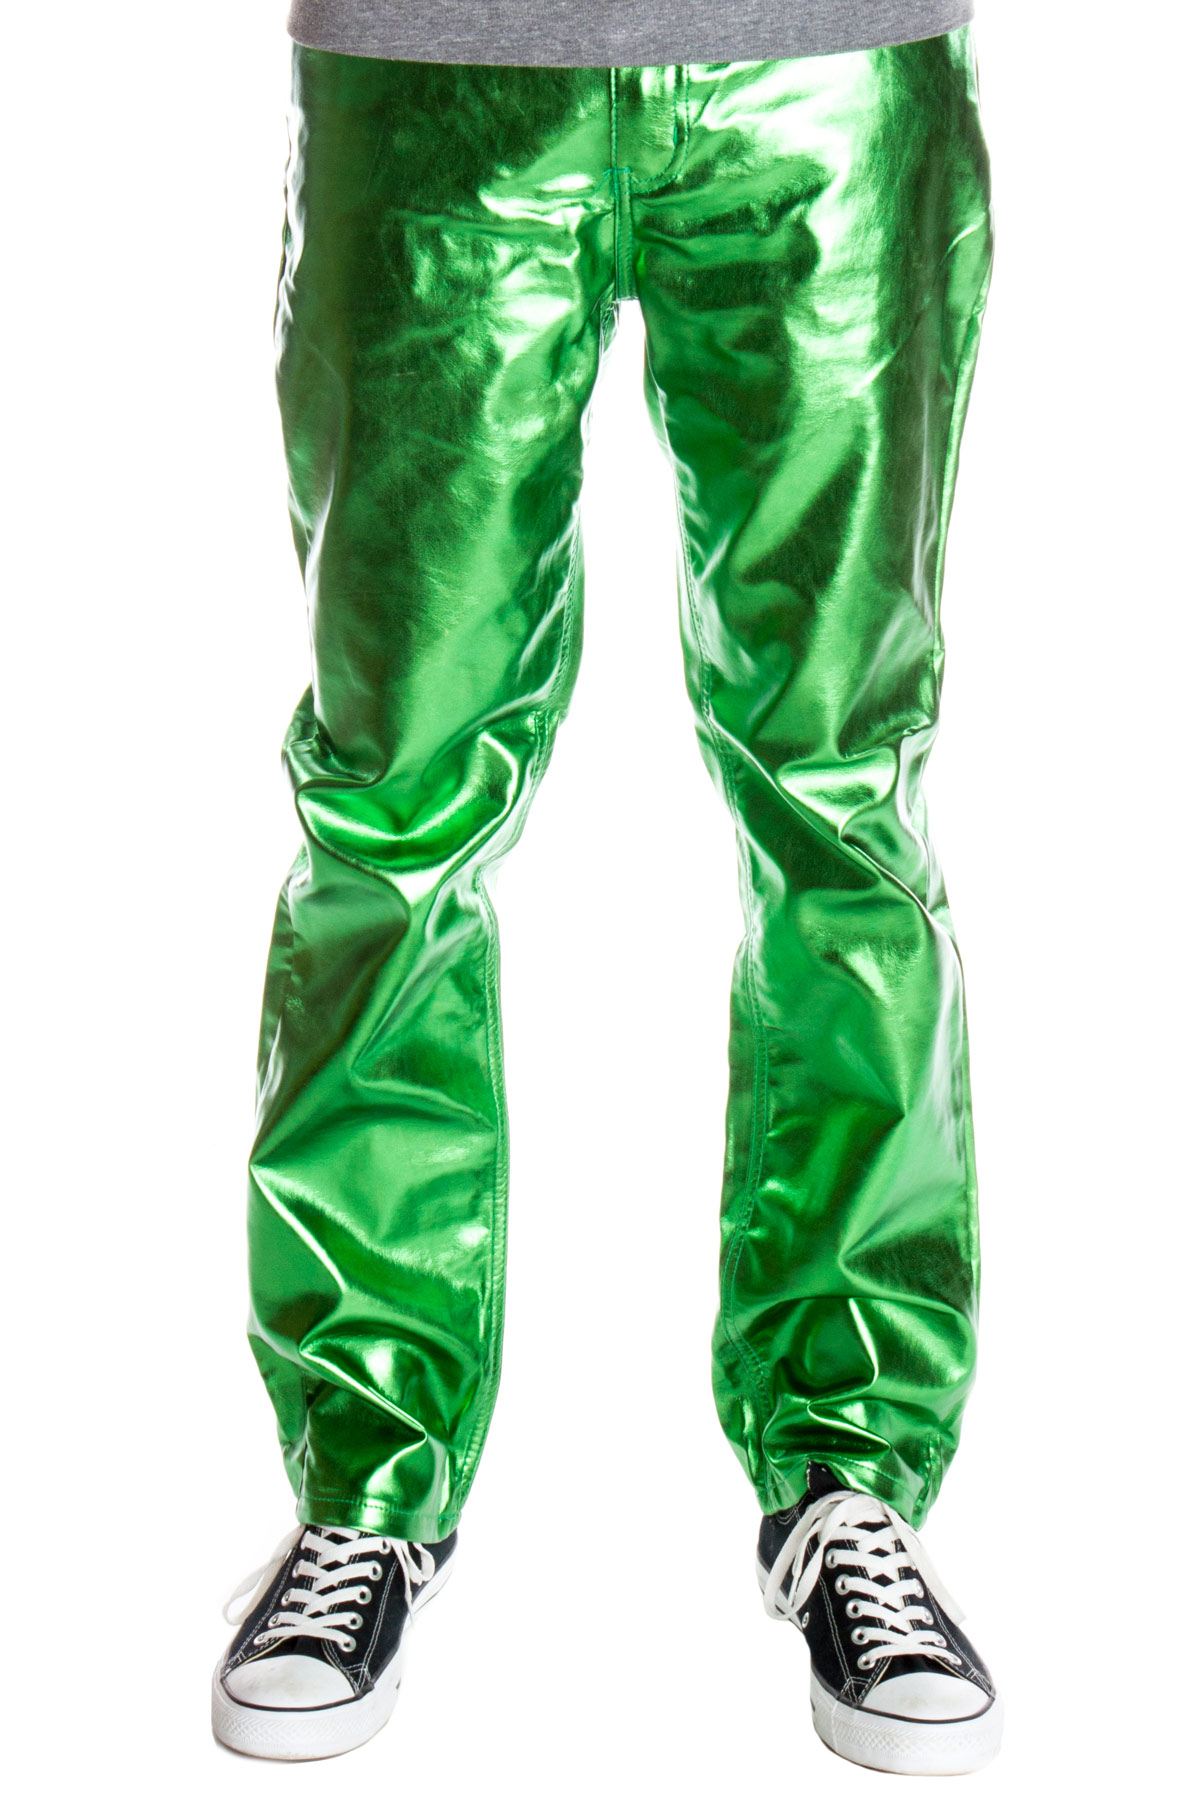 green metallic jeans for men